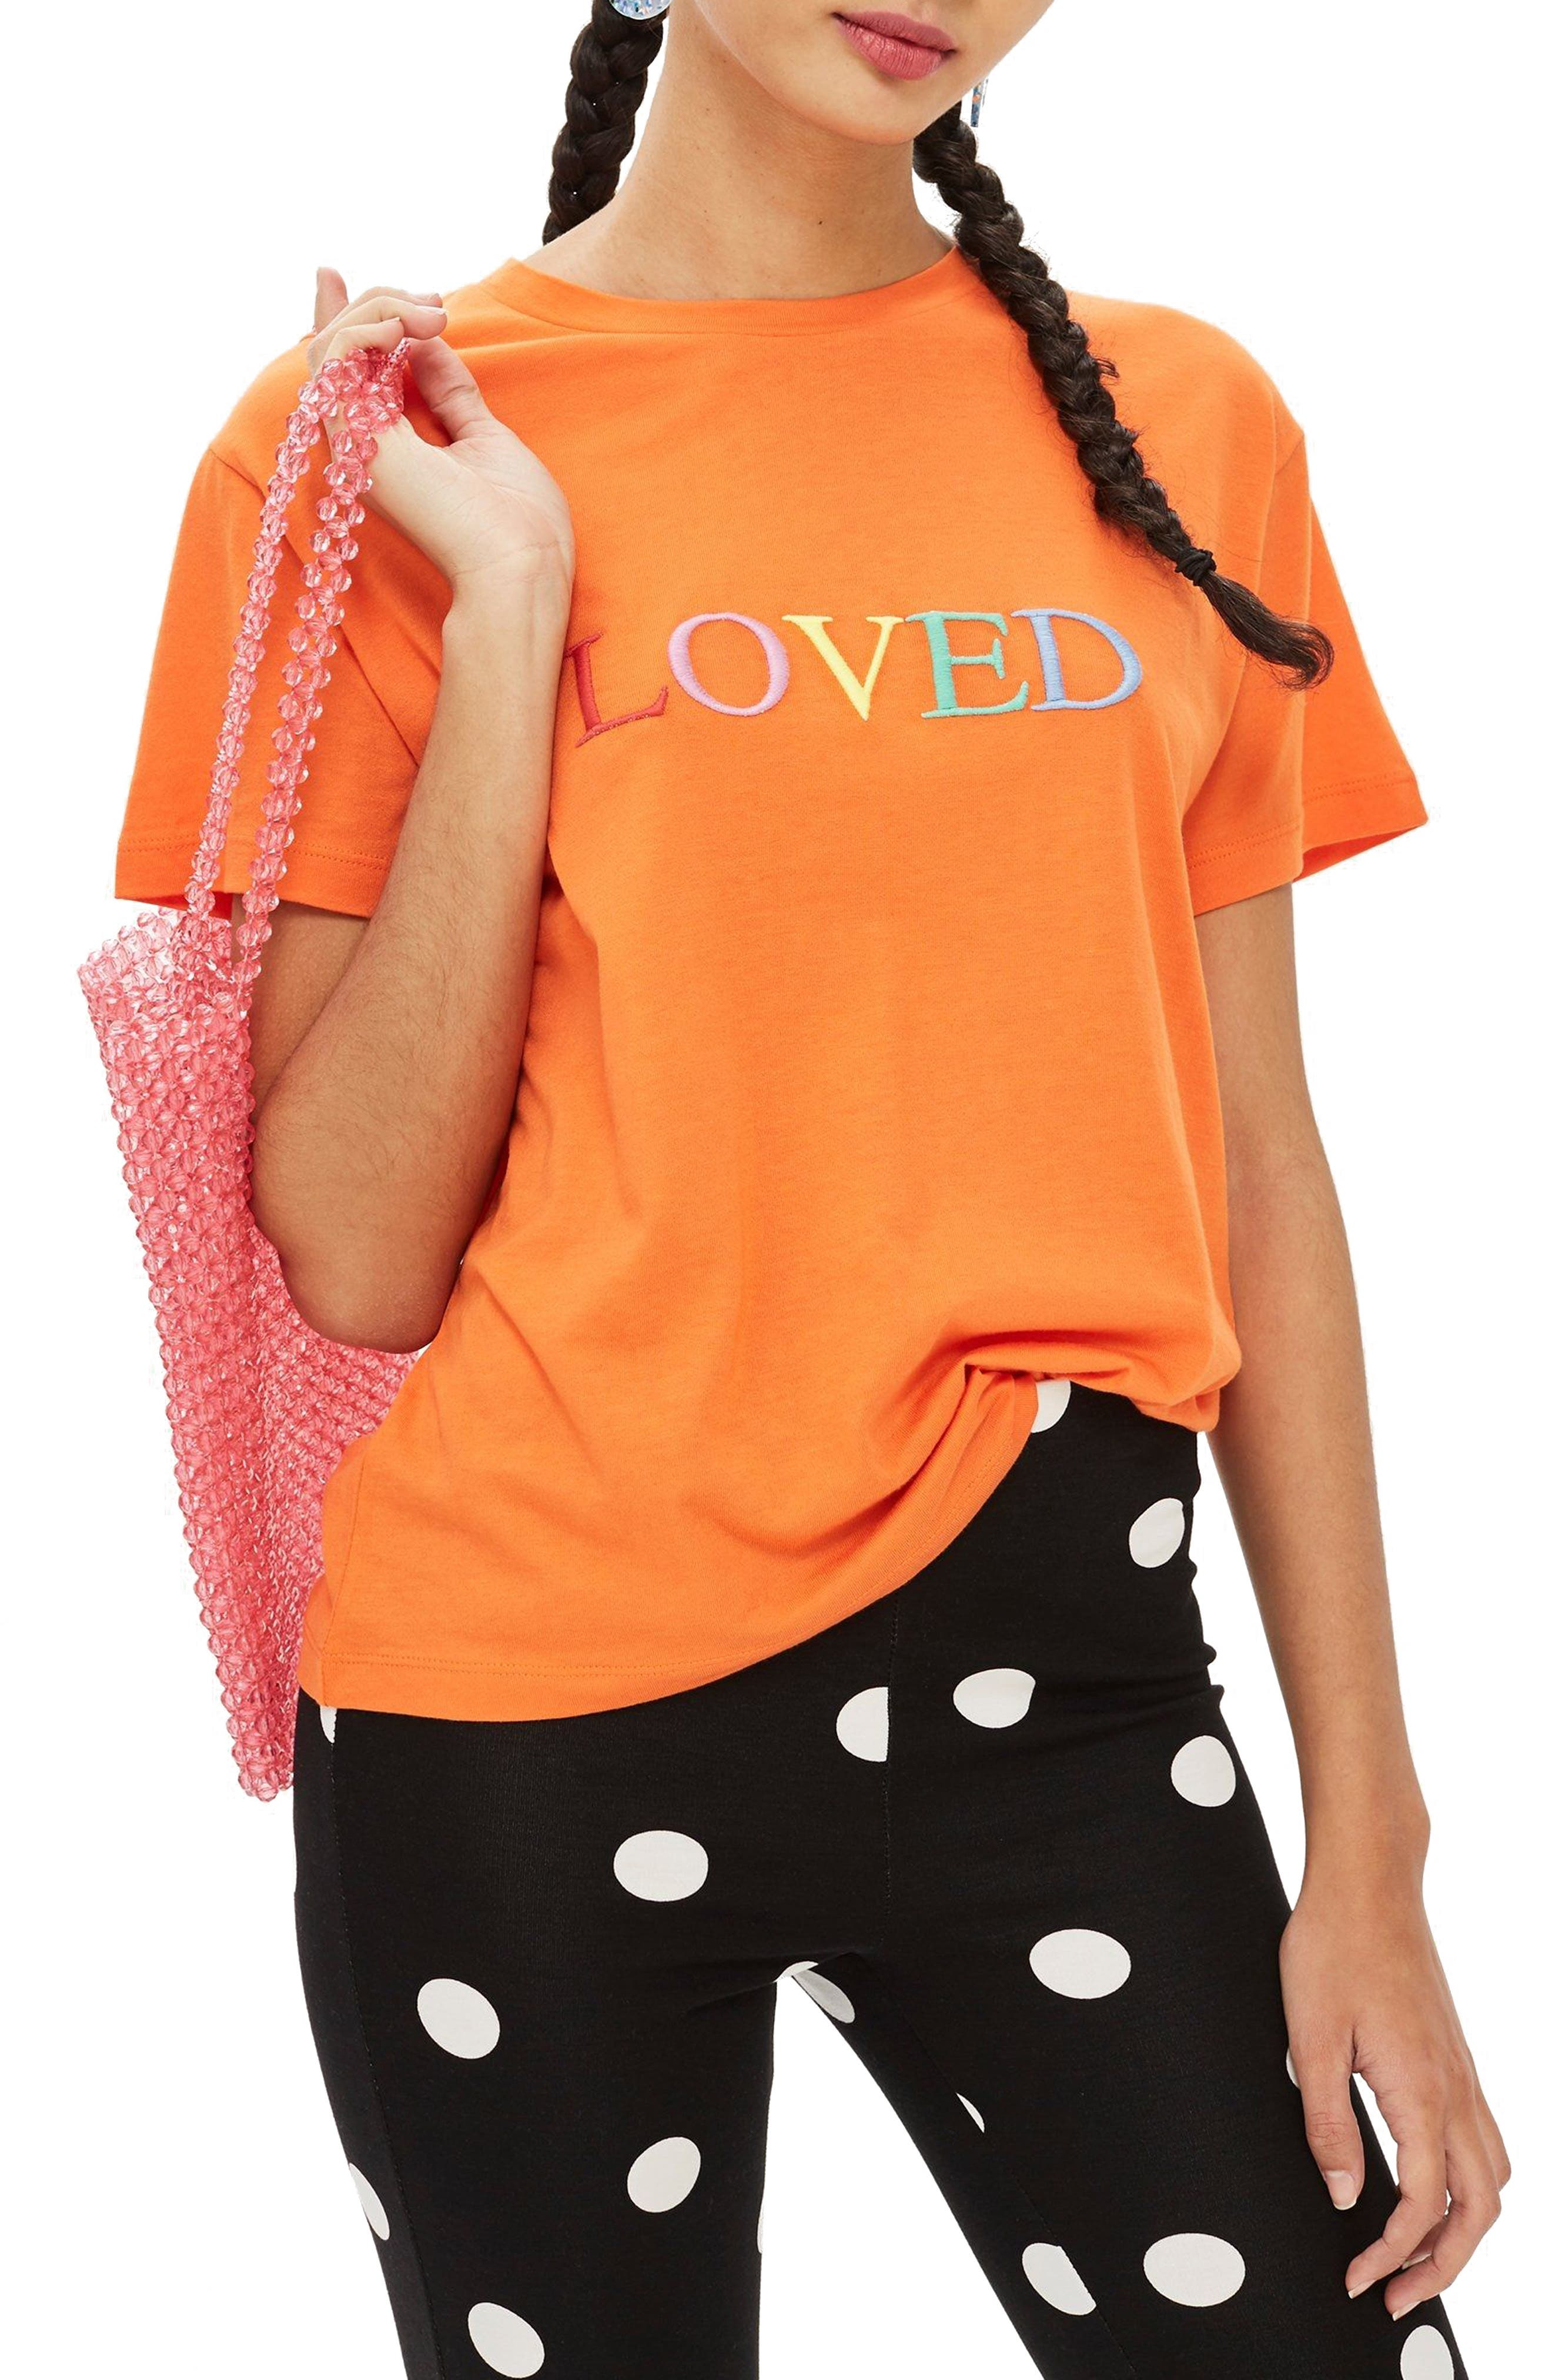 Loved Embroidered Tee,                             Main thumbnail 1, color,                             Orange